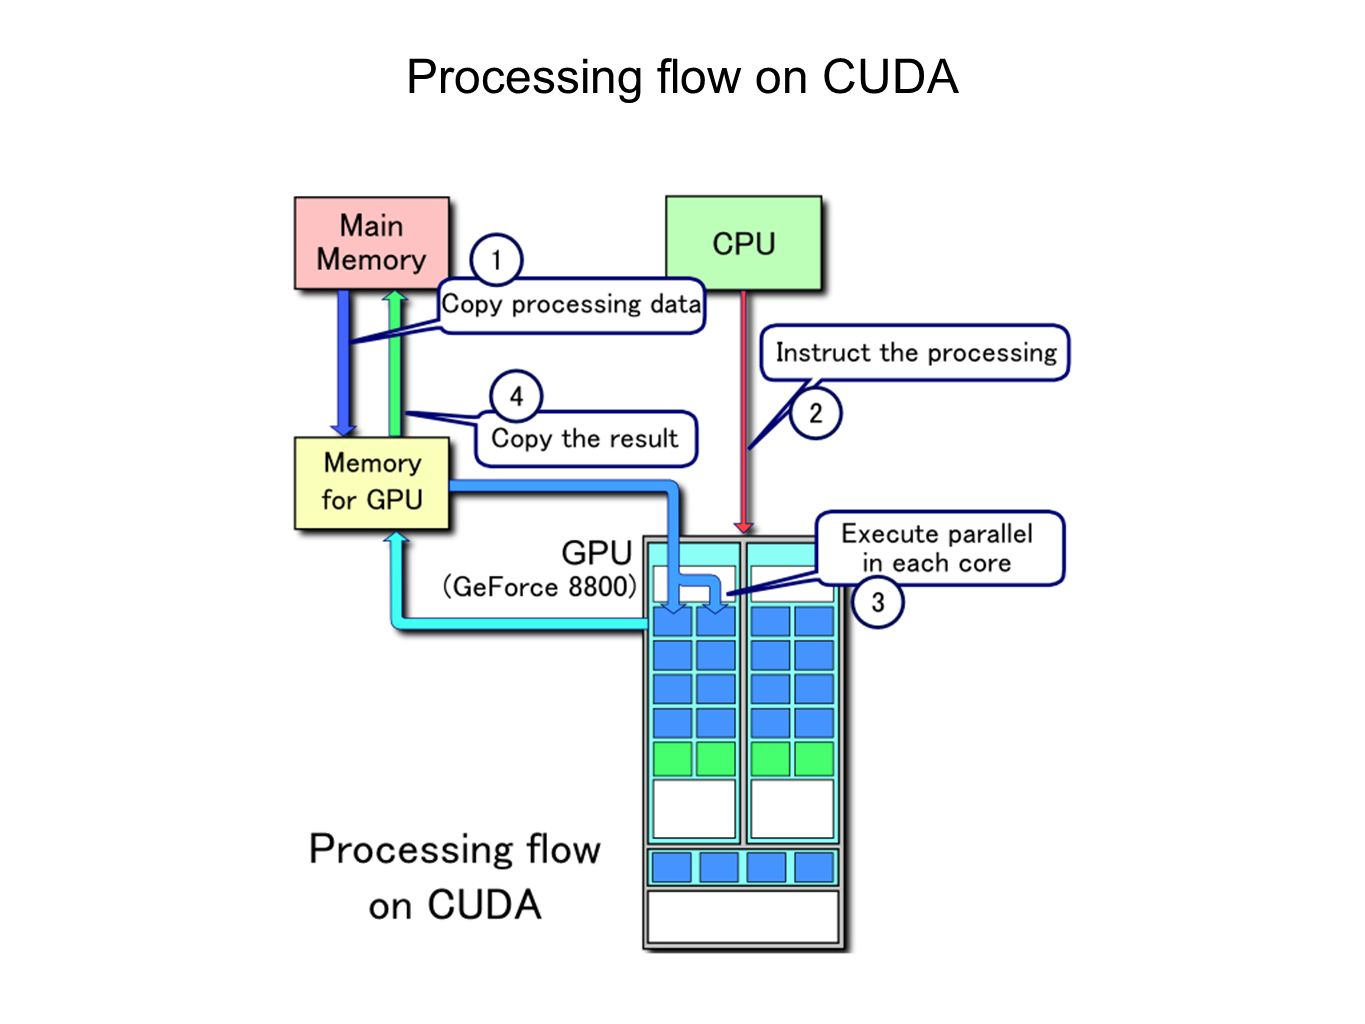 Processing flow on CUDA